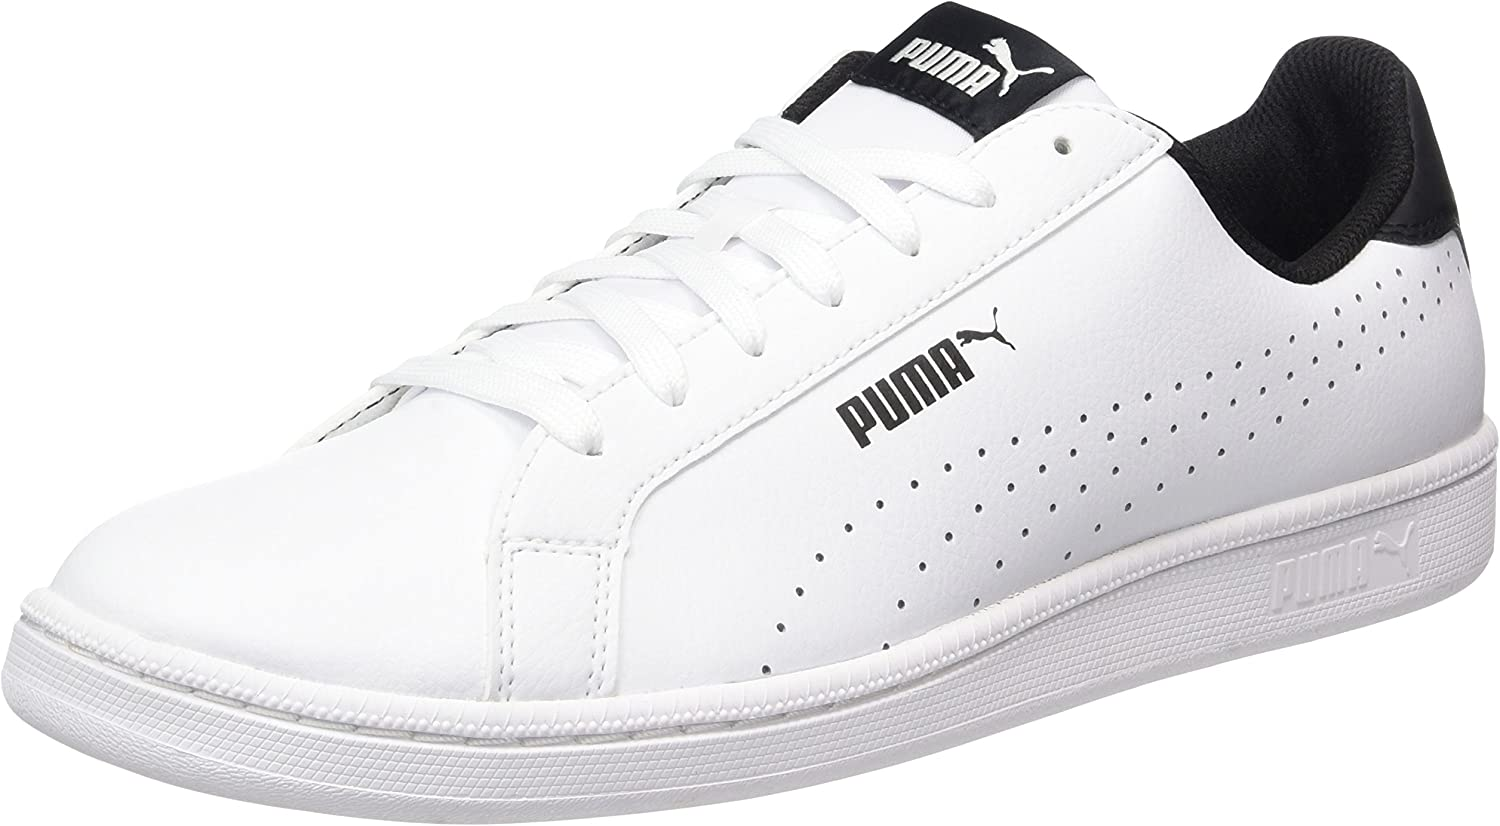 Puma Unisex Adults' Smash Perf Low-Top Sneakers